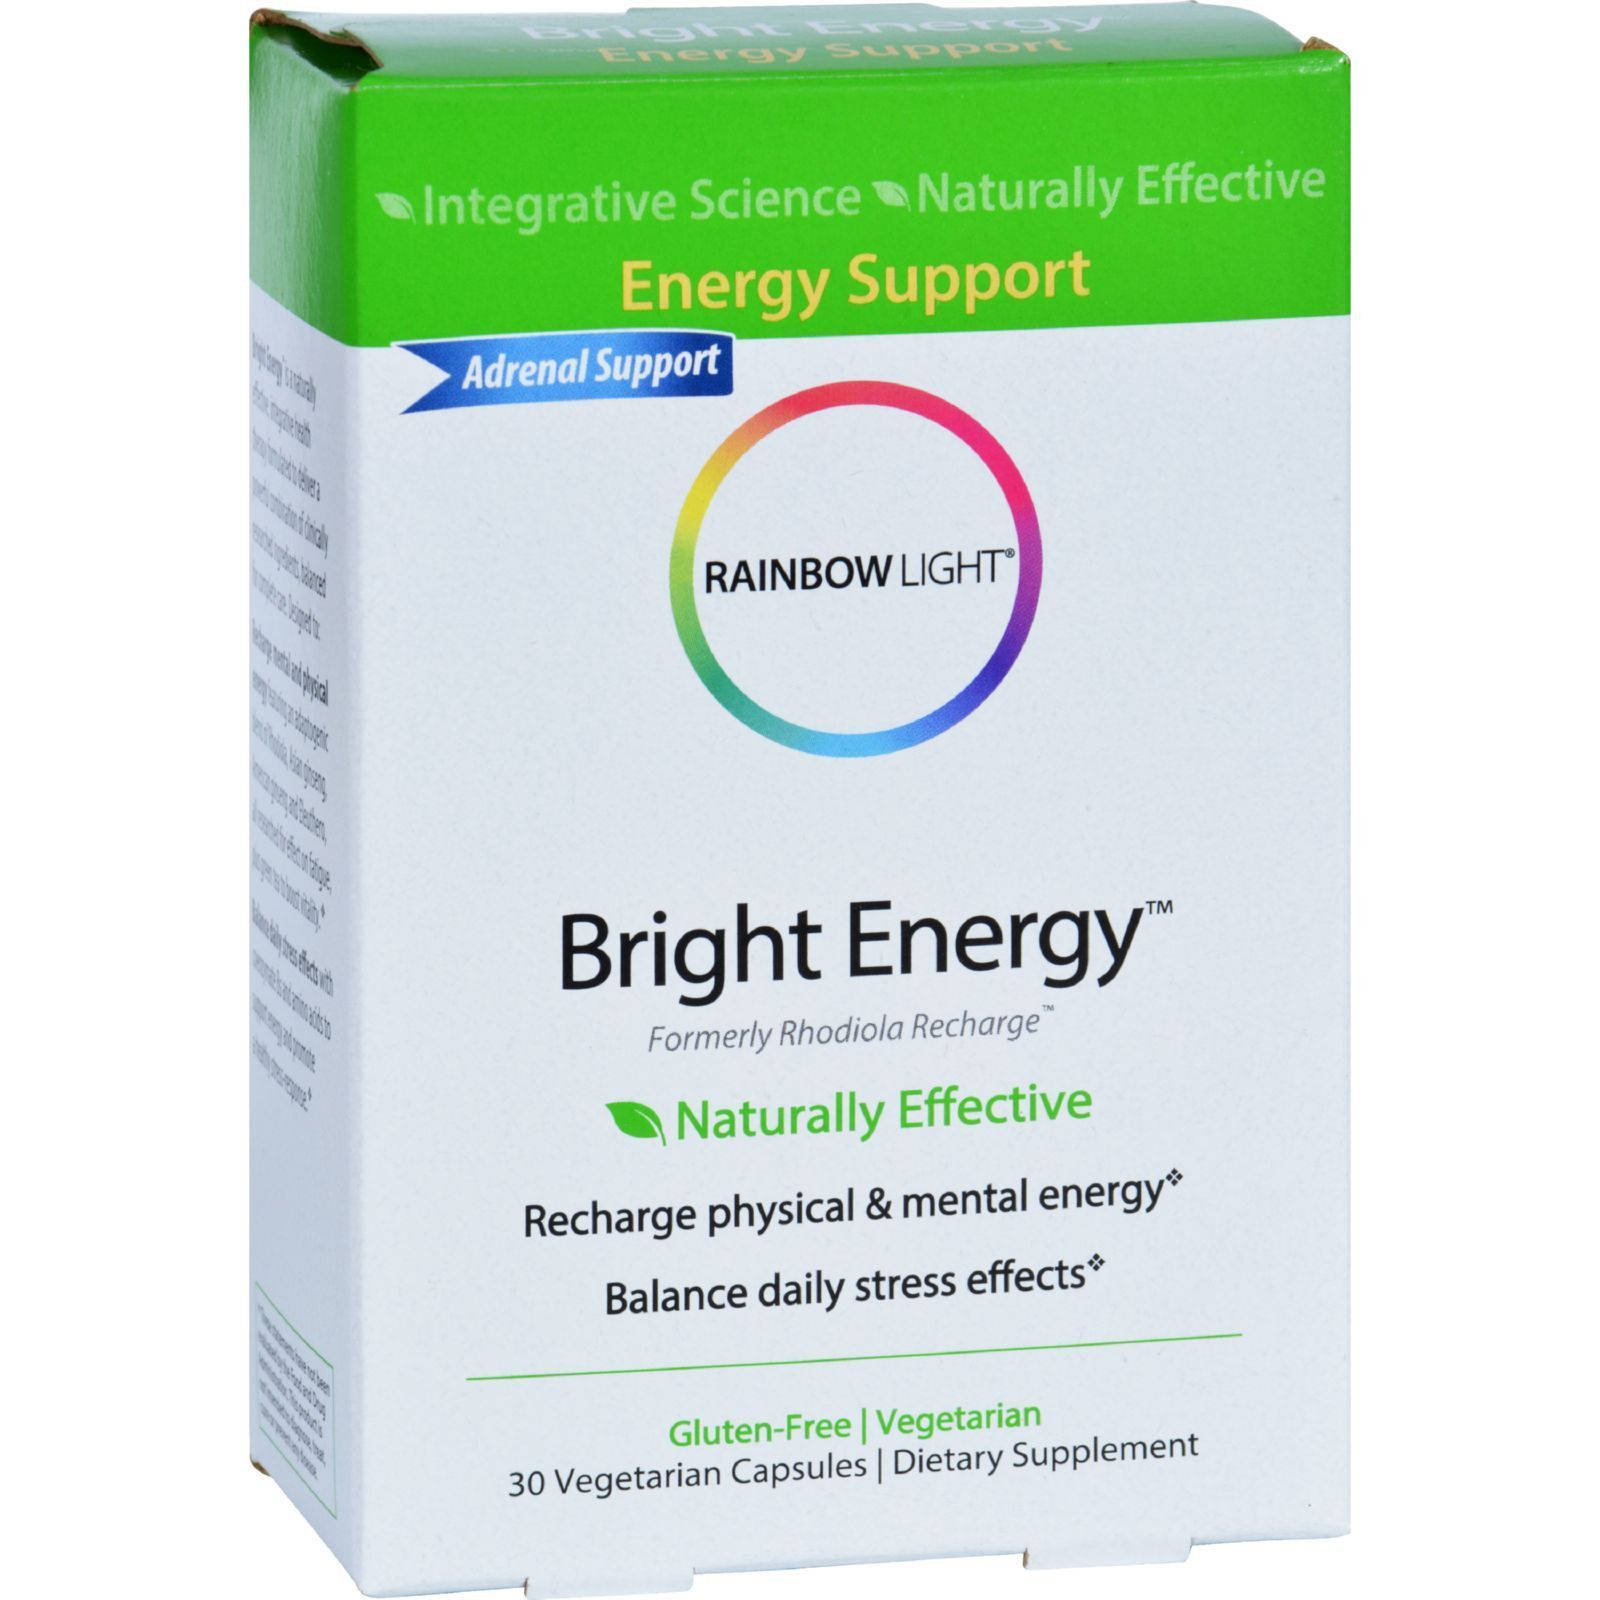 Rainbow Light Reme S For Wellness